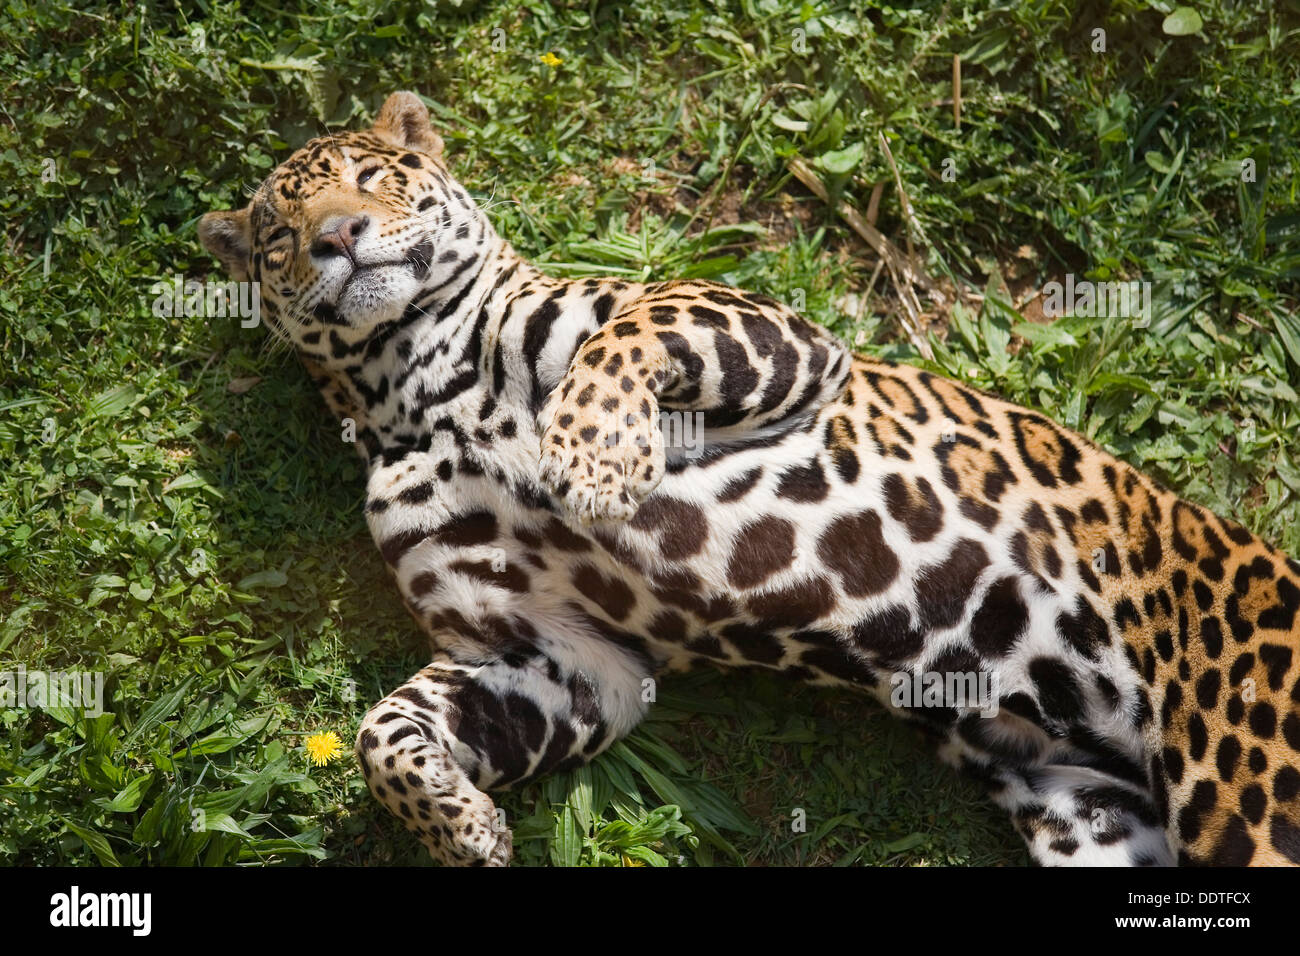 jaguar (Panthera onca). - Stock Image